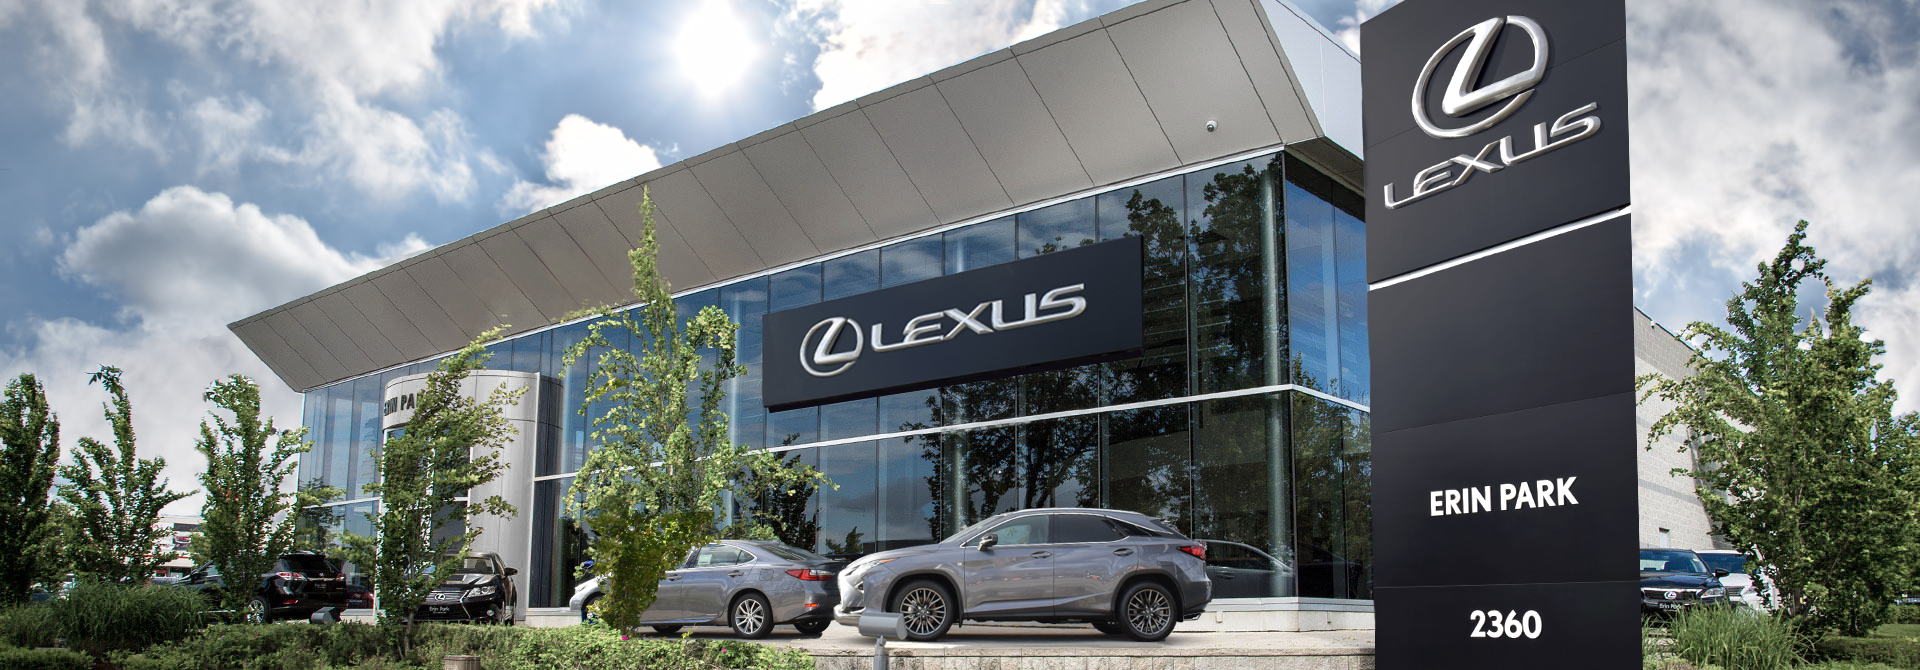 store dealers lexus of new dealer dealership used bay and tampa in